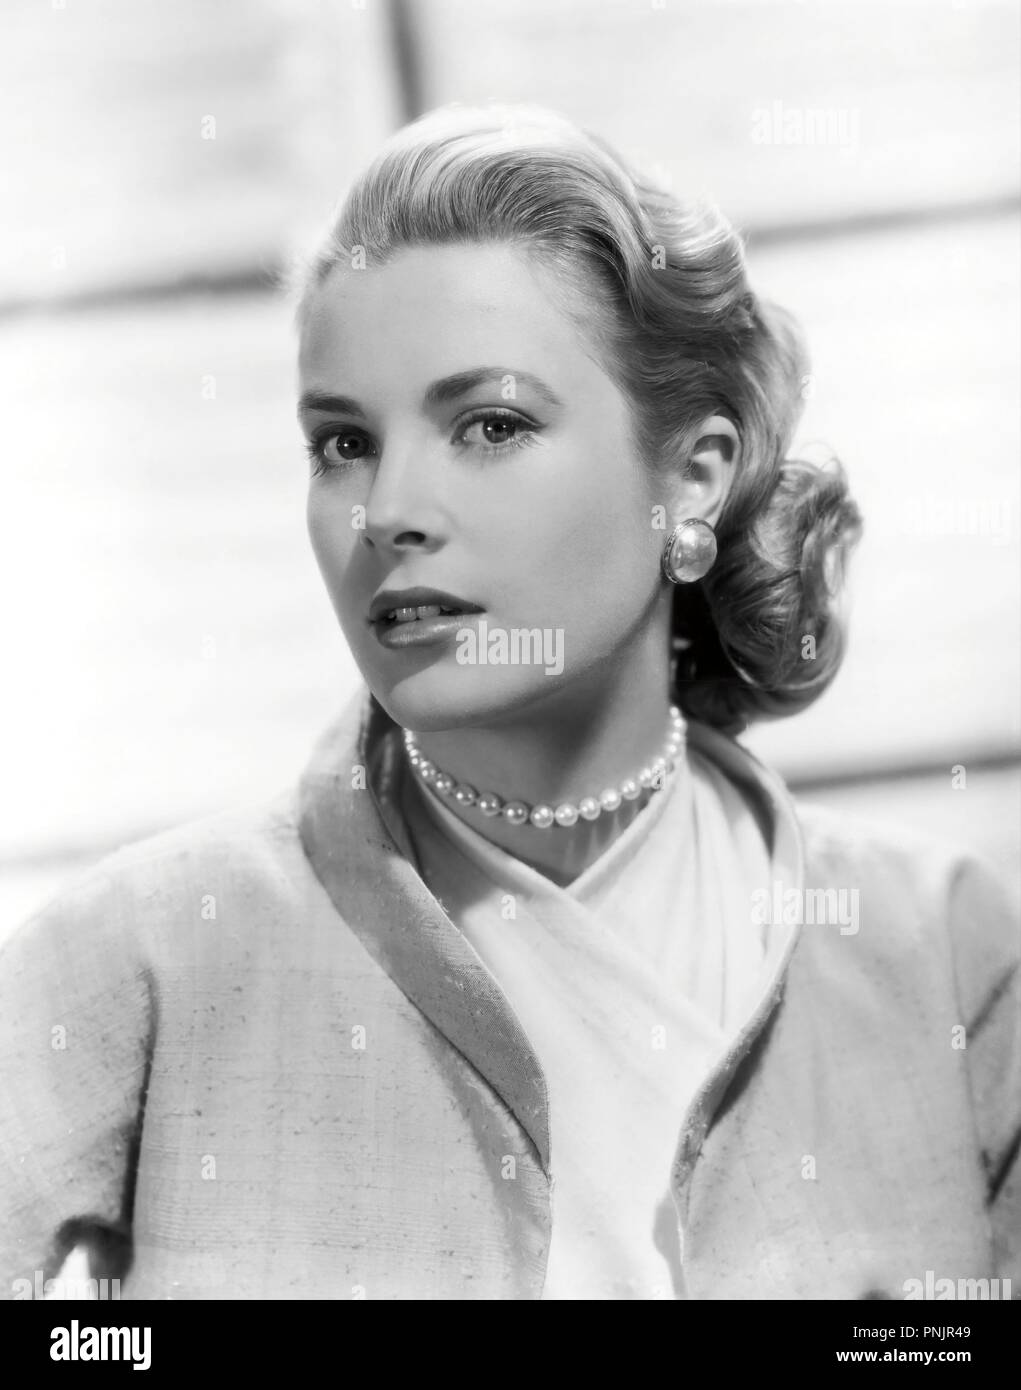 Original film title: REAR WINDOW. English title: REAR WINDOW. Year: 1954. Director: ALFRED HITCHCOCK. Stars: GRACE KELLY. Credit: PARAMOUNT PICTURES / Album - Stock Image